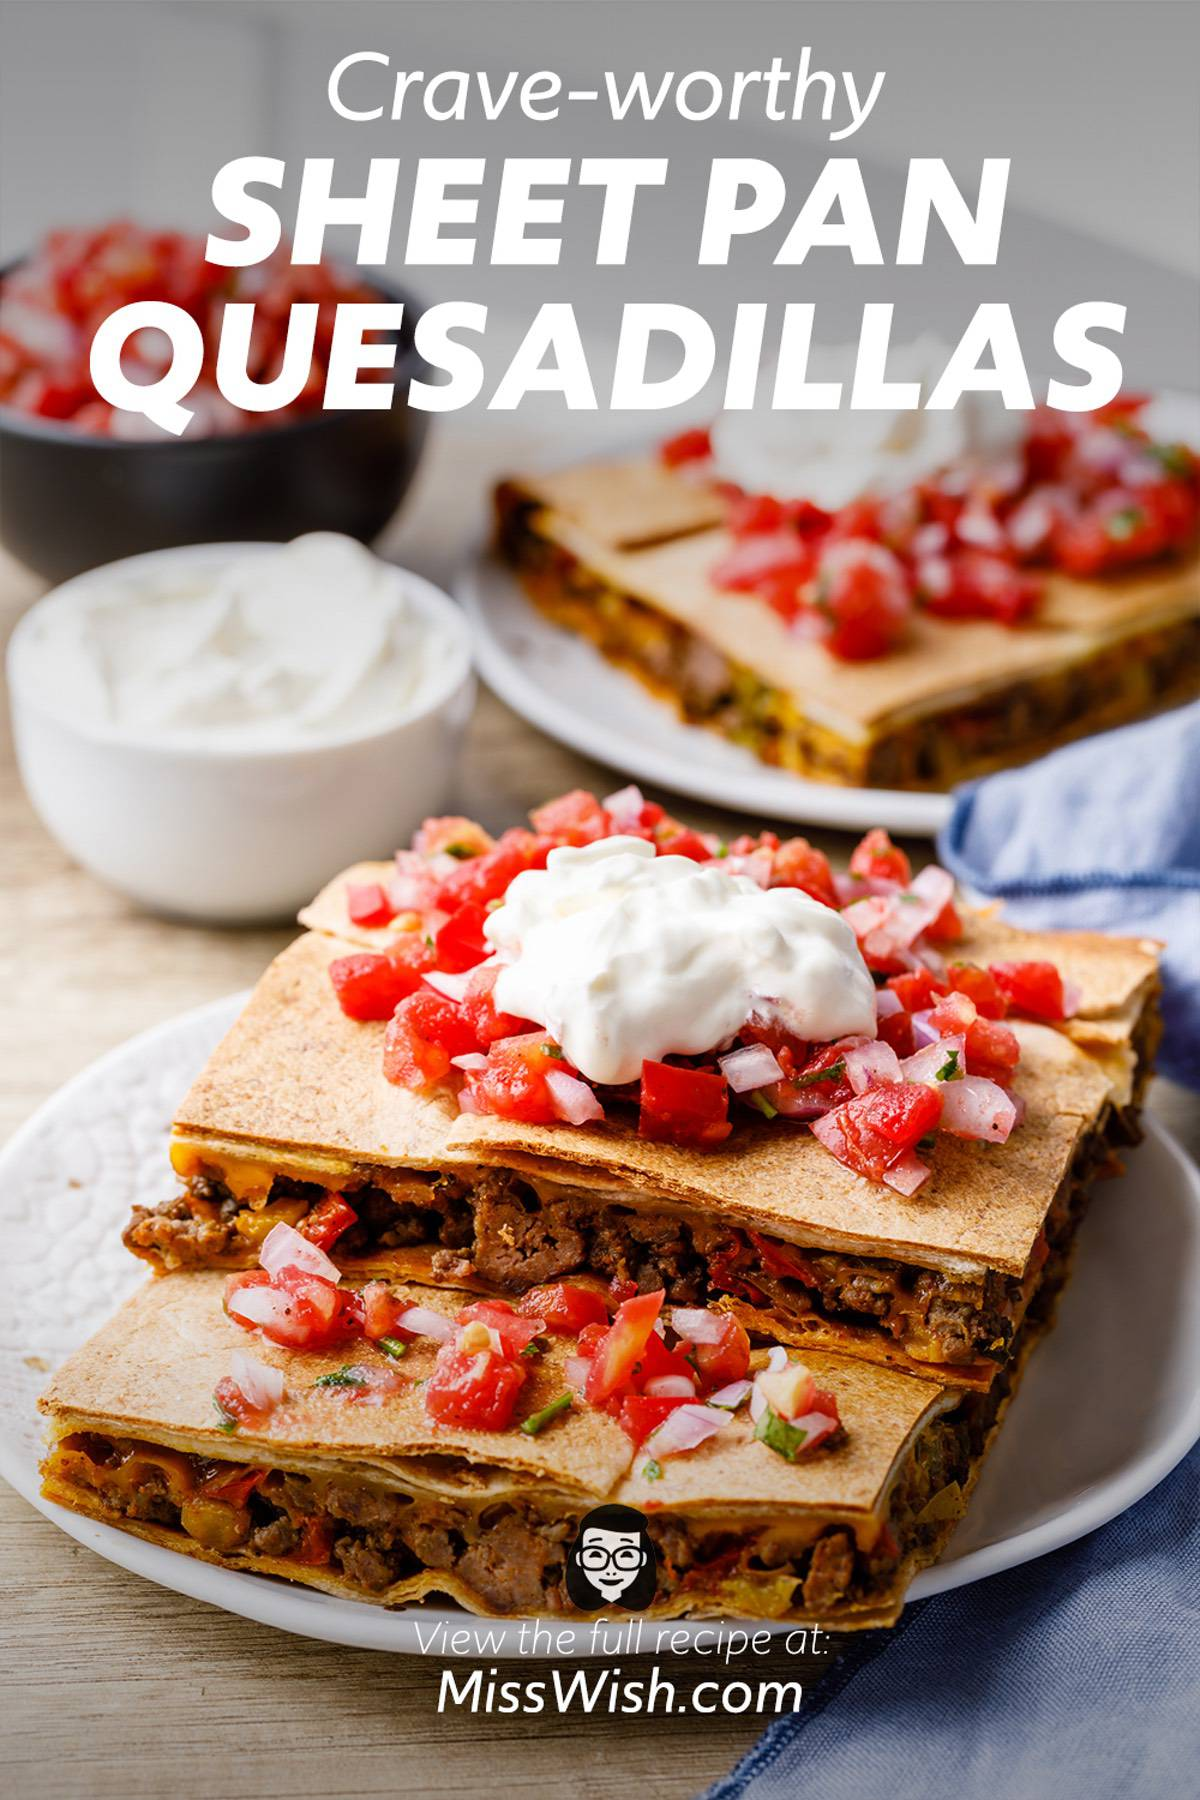 Authentic Sheet Pan Quesadillas